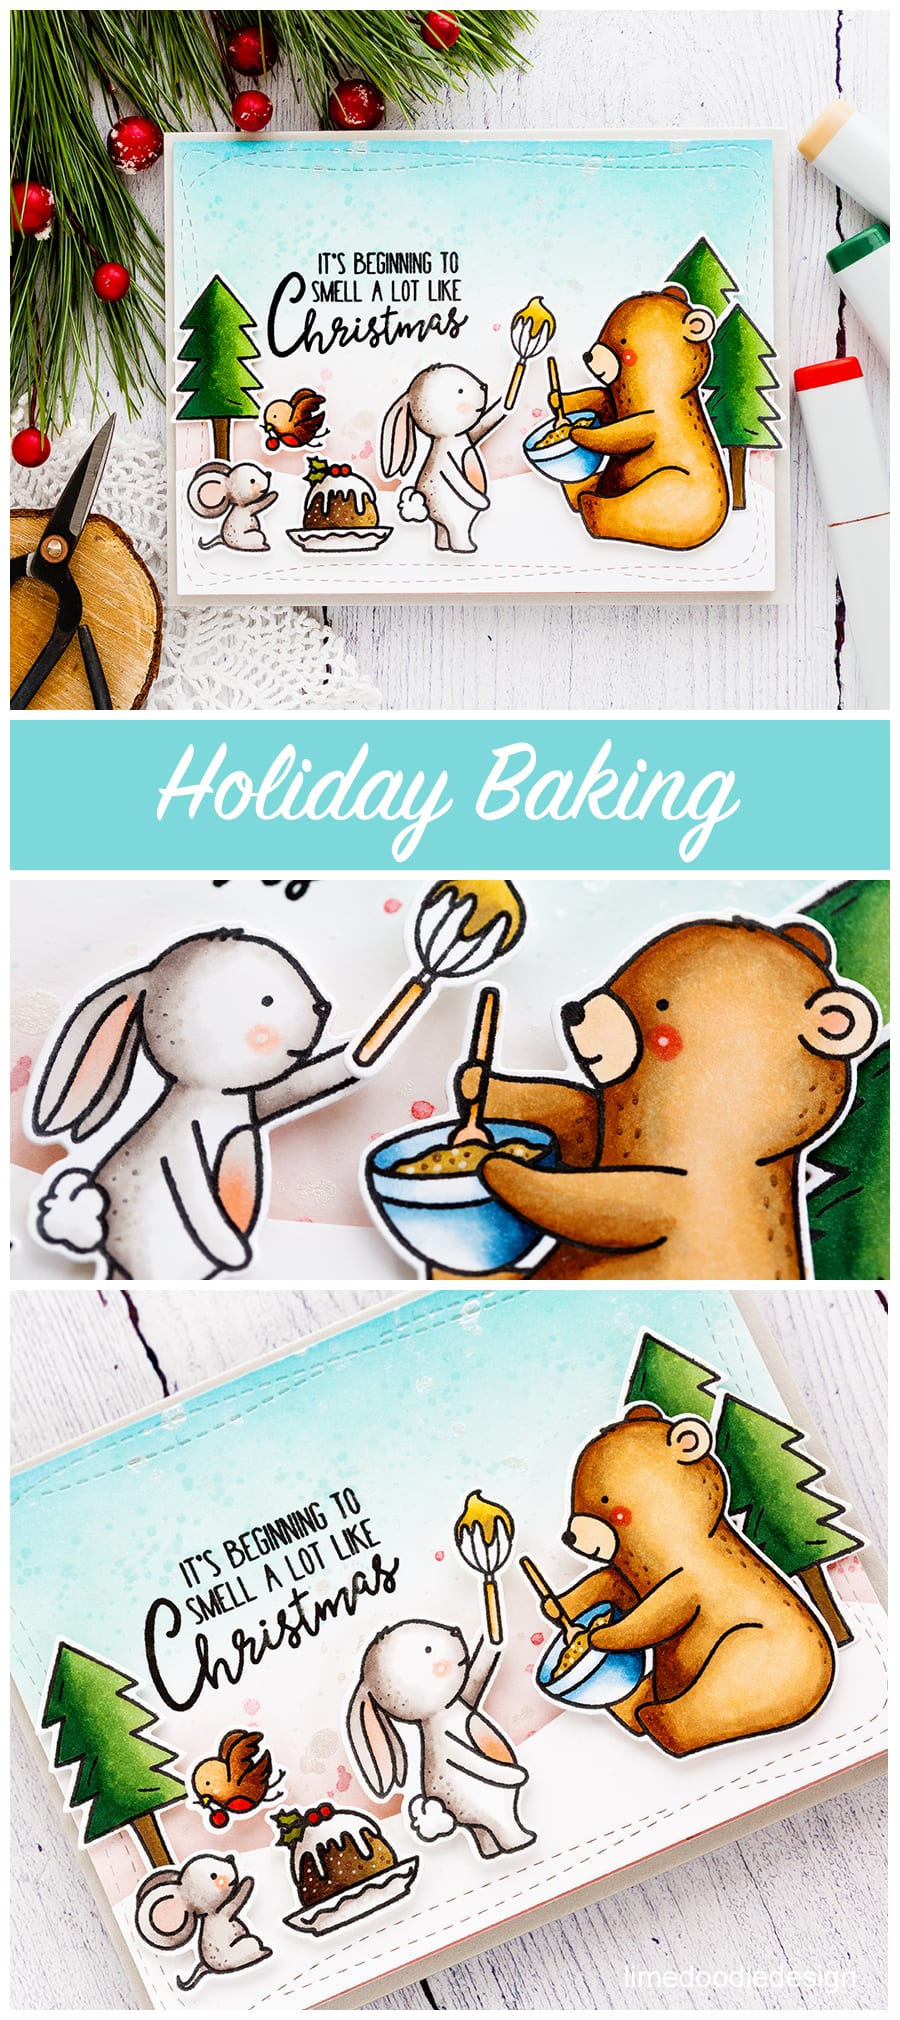 Cute Holiday baking handmade Christmas card by Debby Hughes using the Neat & Tangled Holiday Baking set. Find out more here: http://limedoodledesign.com/2017/09/holiday-baking/